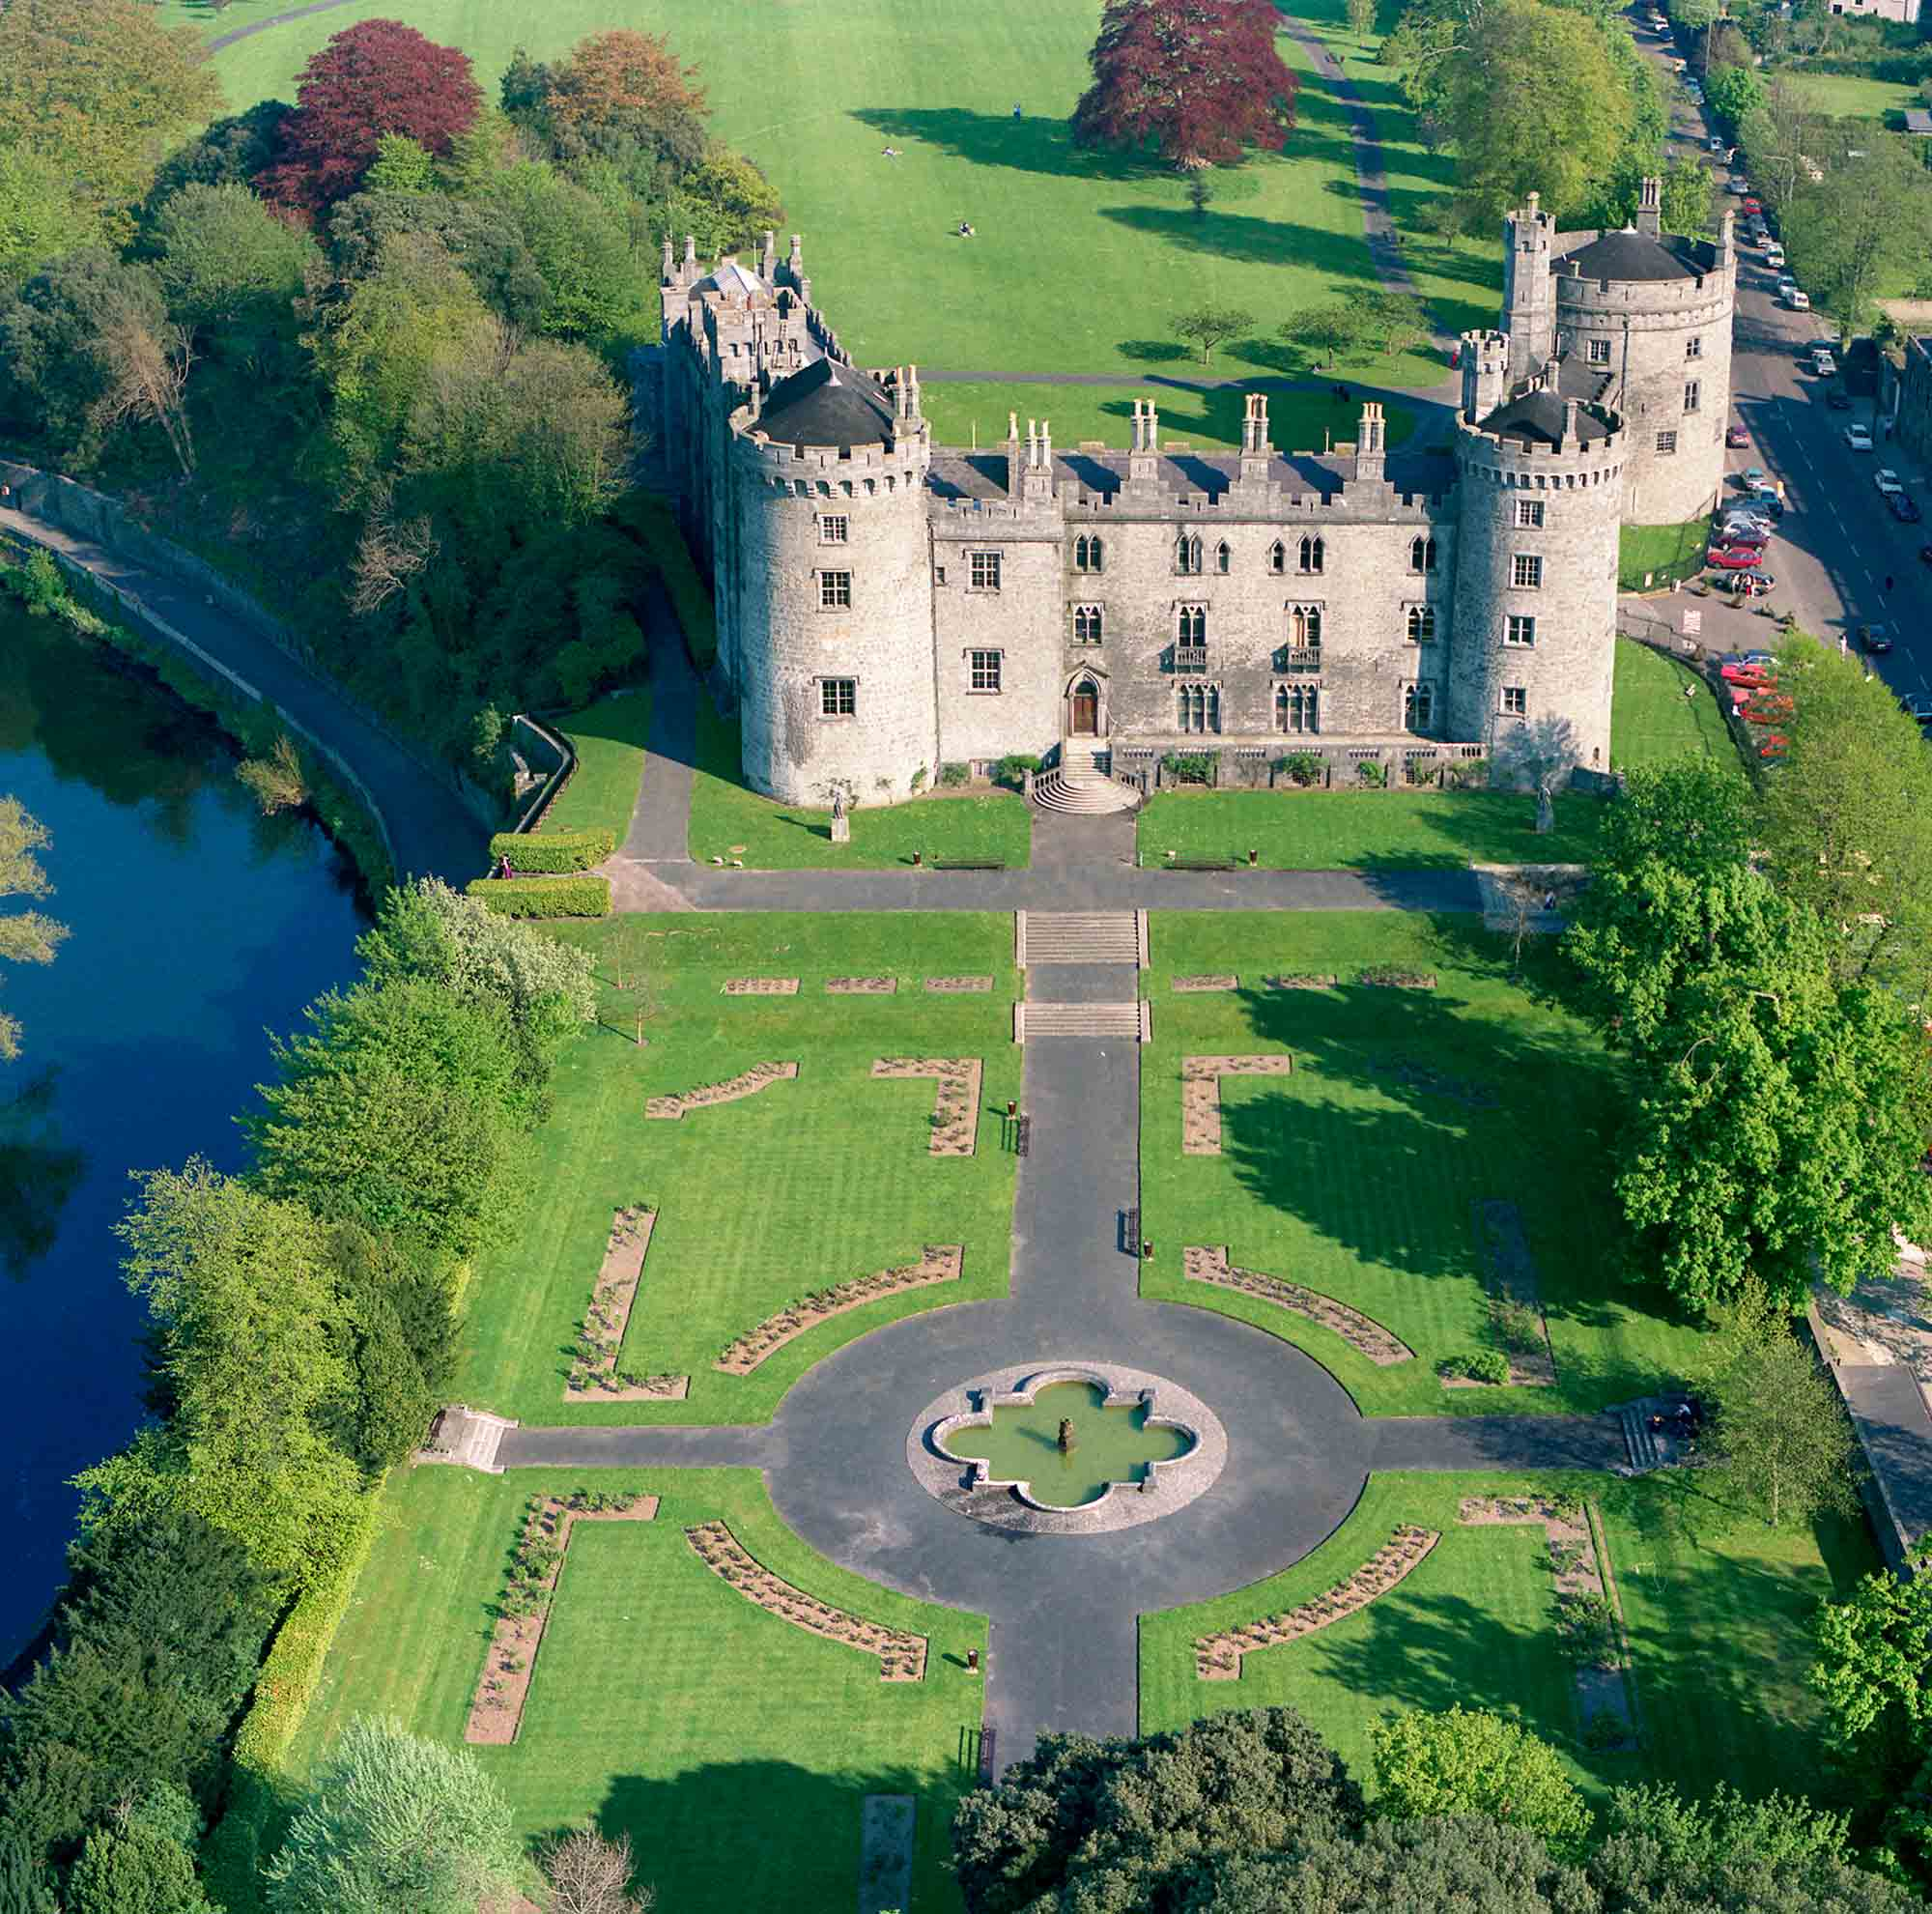 Aerial view of Kilkenny Castle with River Nore on lefthand side